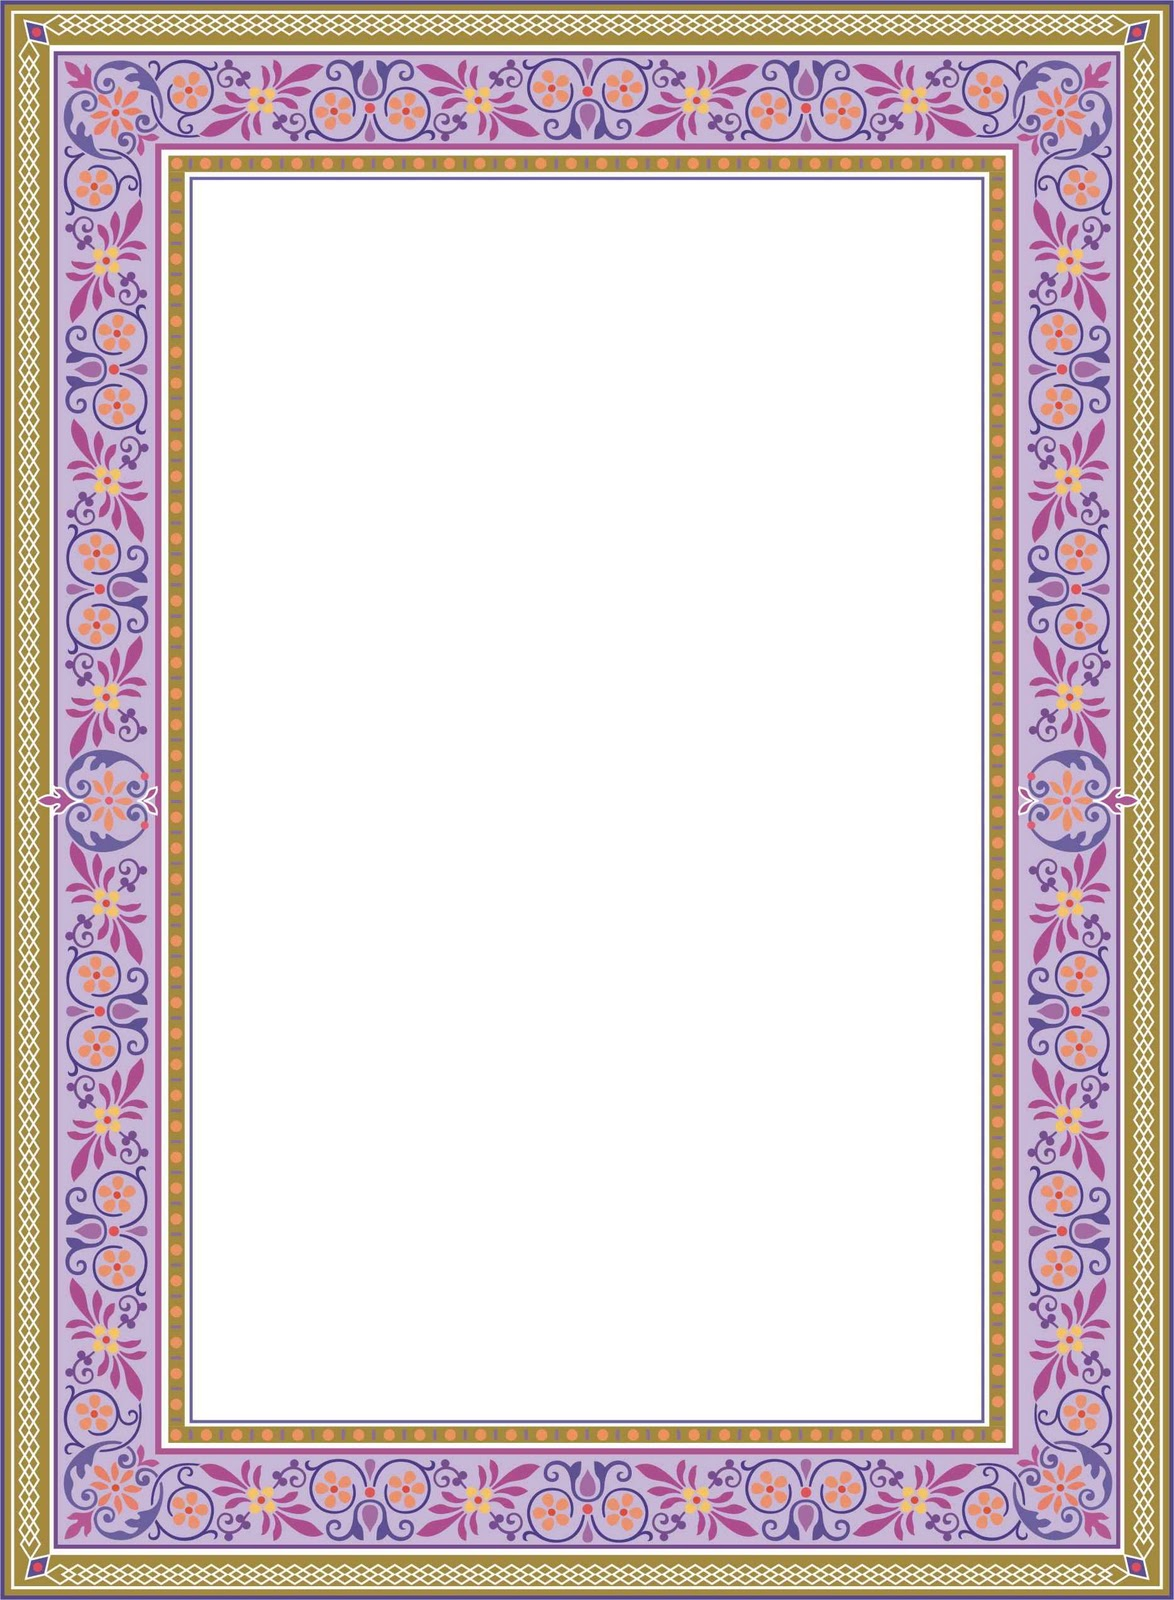 Wedding Borders and Frames Clip Art